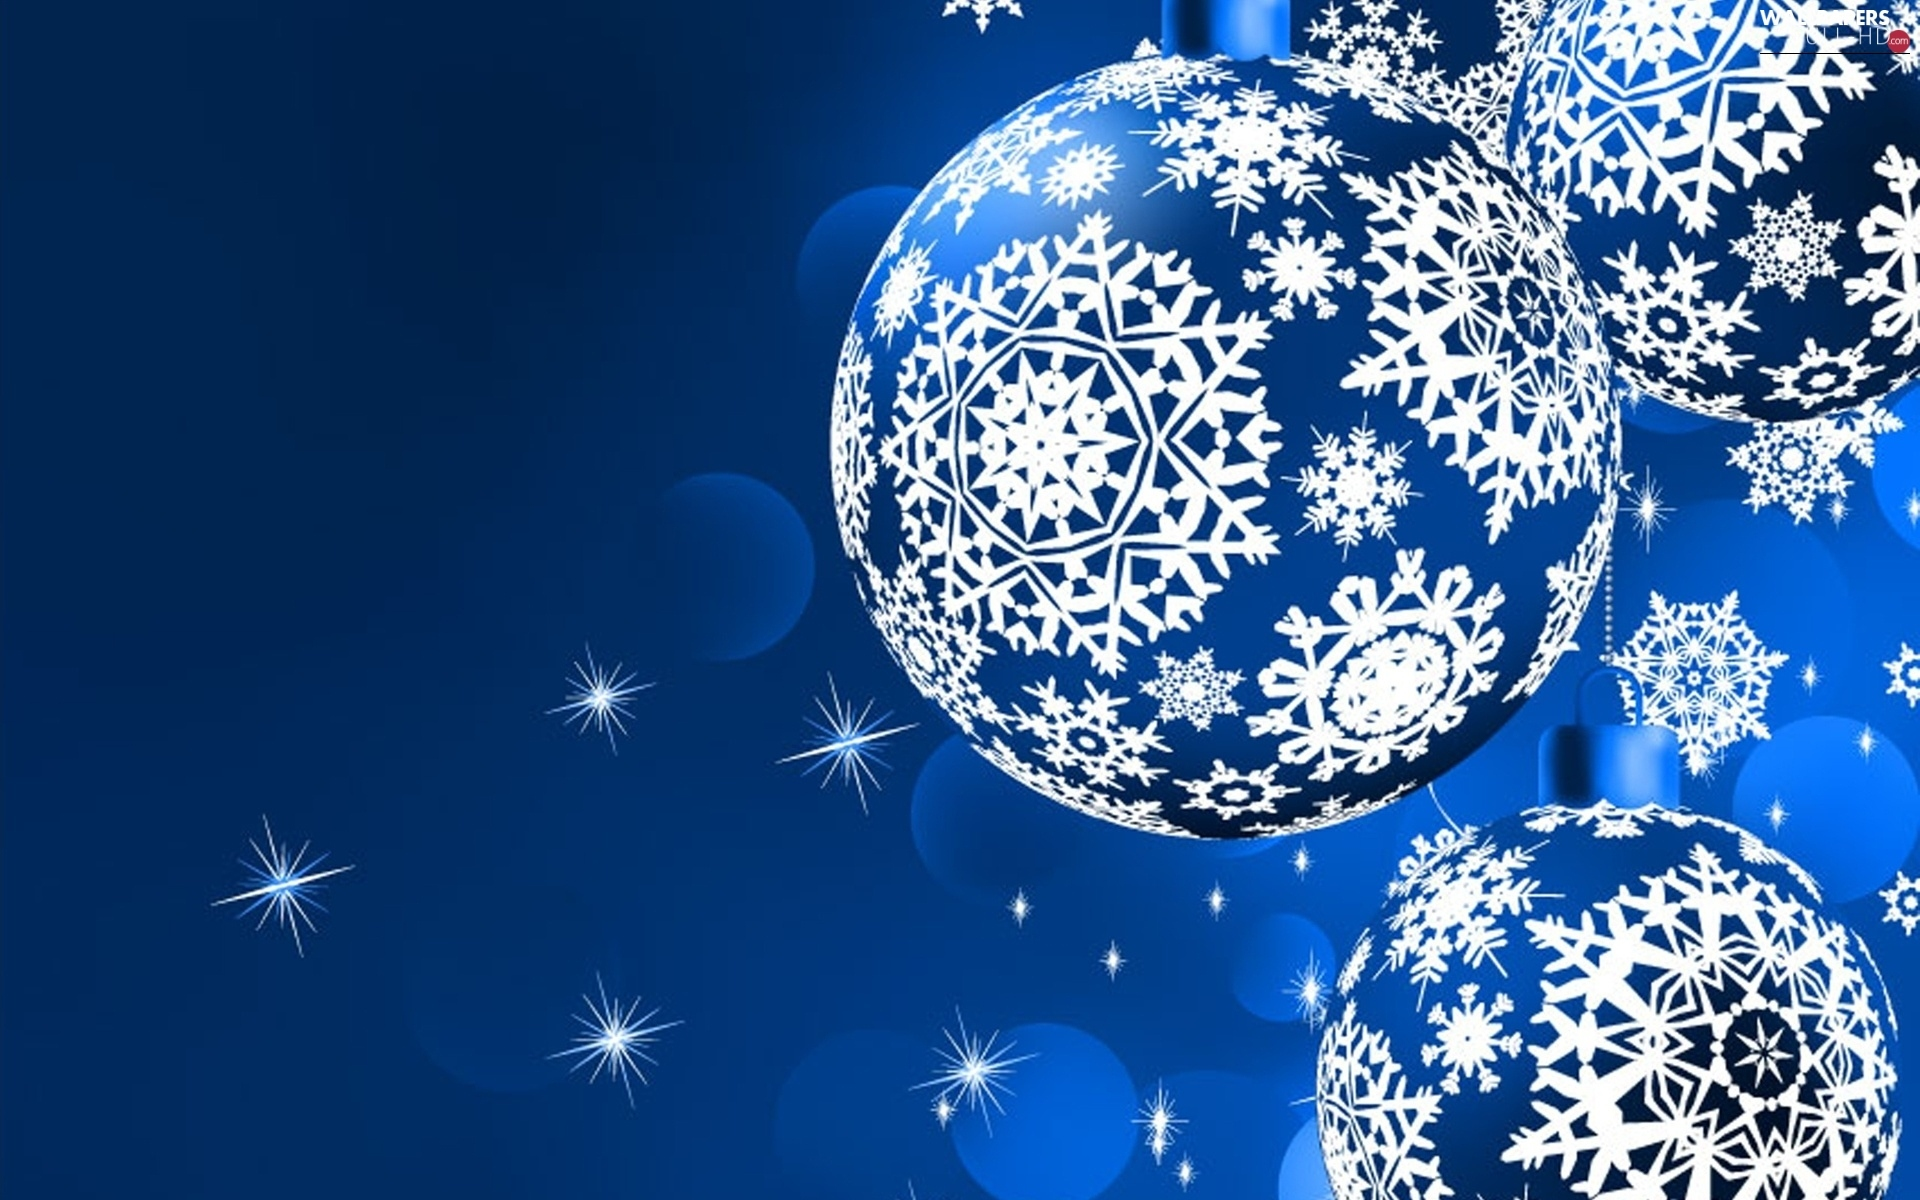 background, baubles, Blue